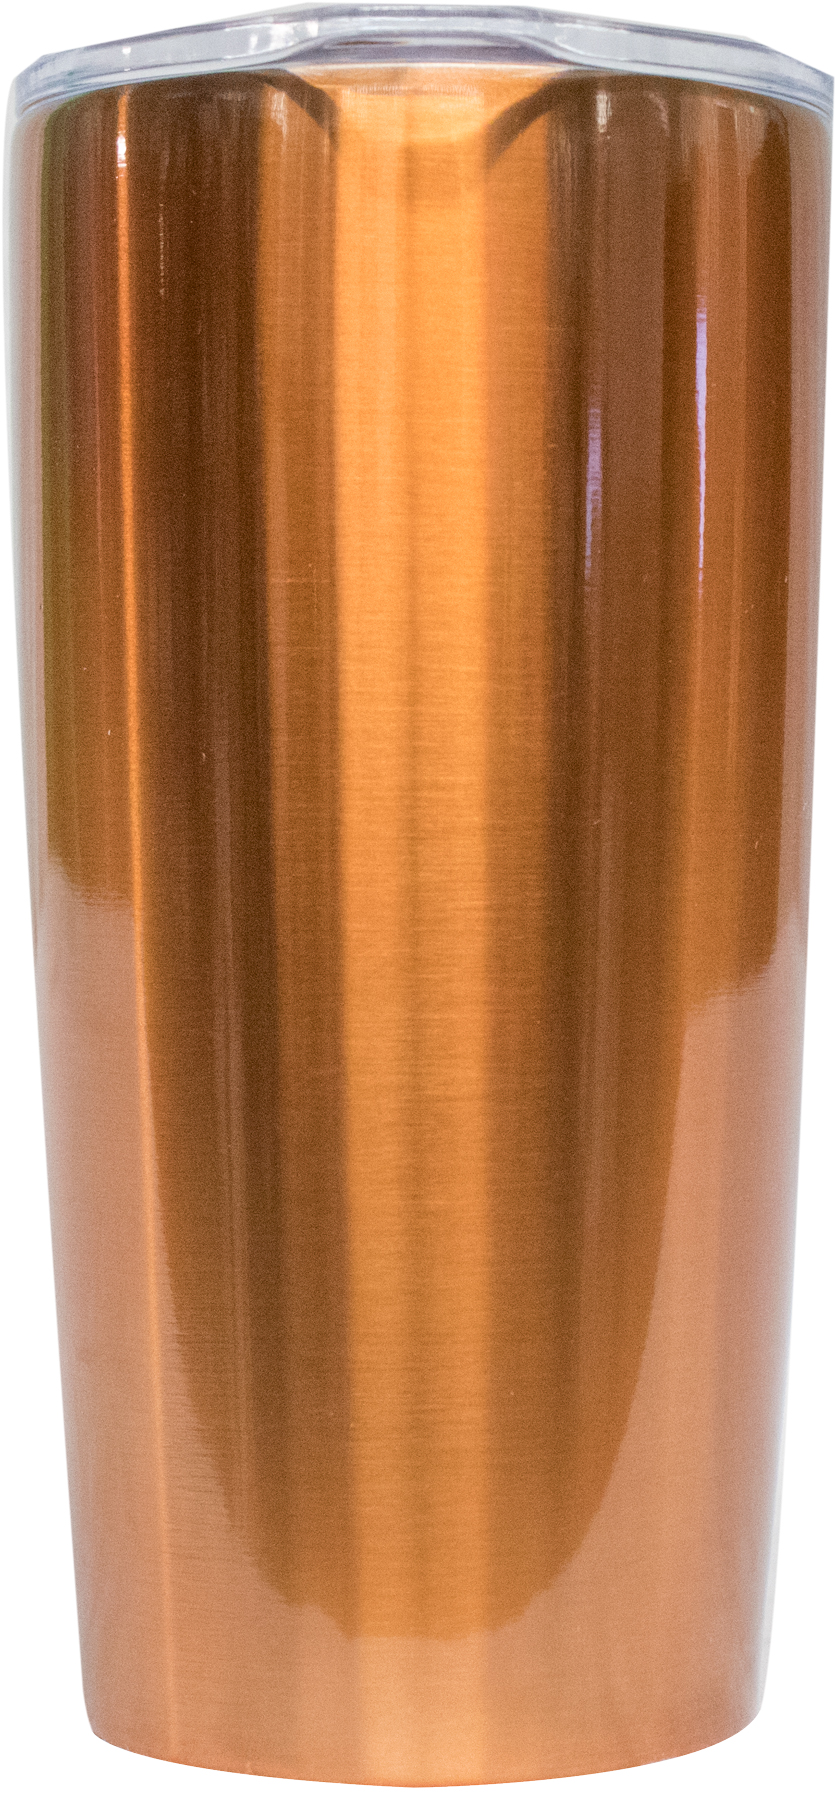 20oz Tumbler Back - Copper